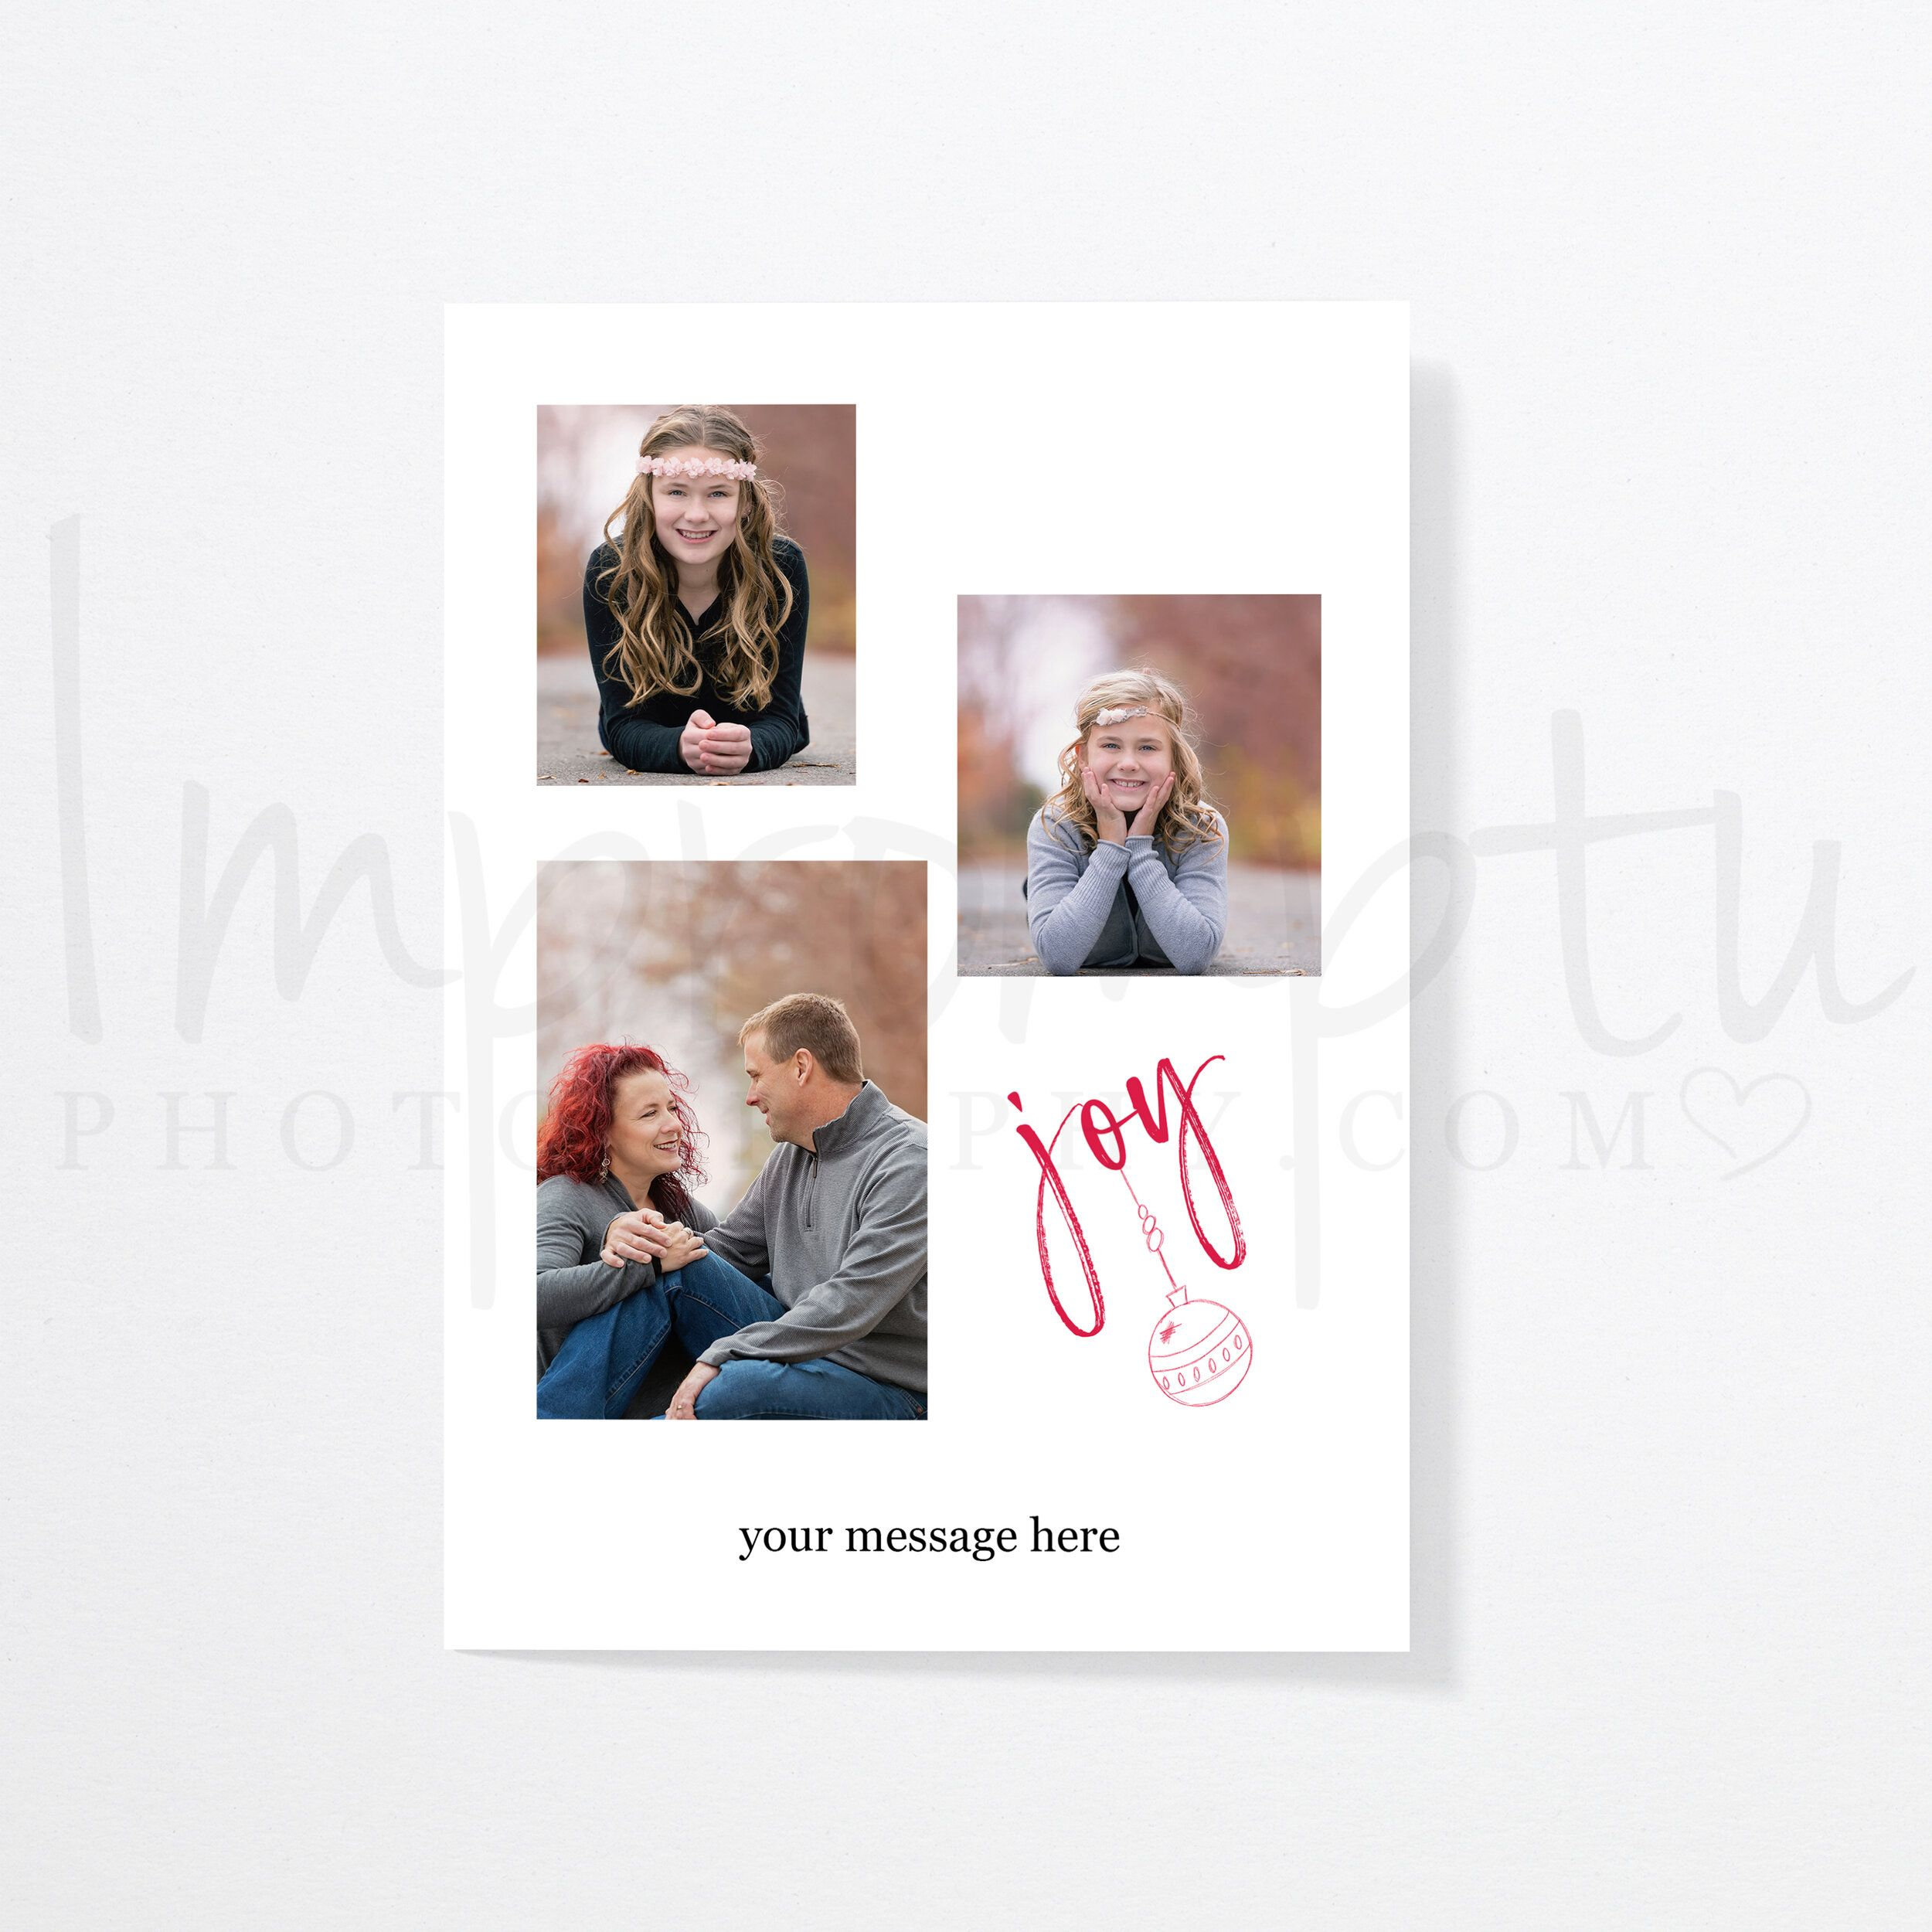 5x7 Joy Christmas Card Template 3 Opening Front Christmas Card Template Joy Christmas Card Card Template